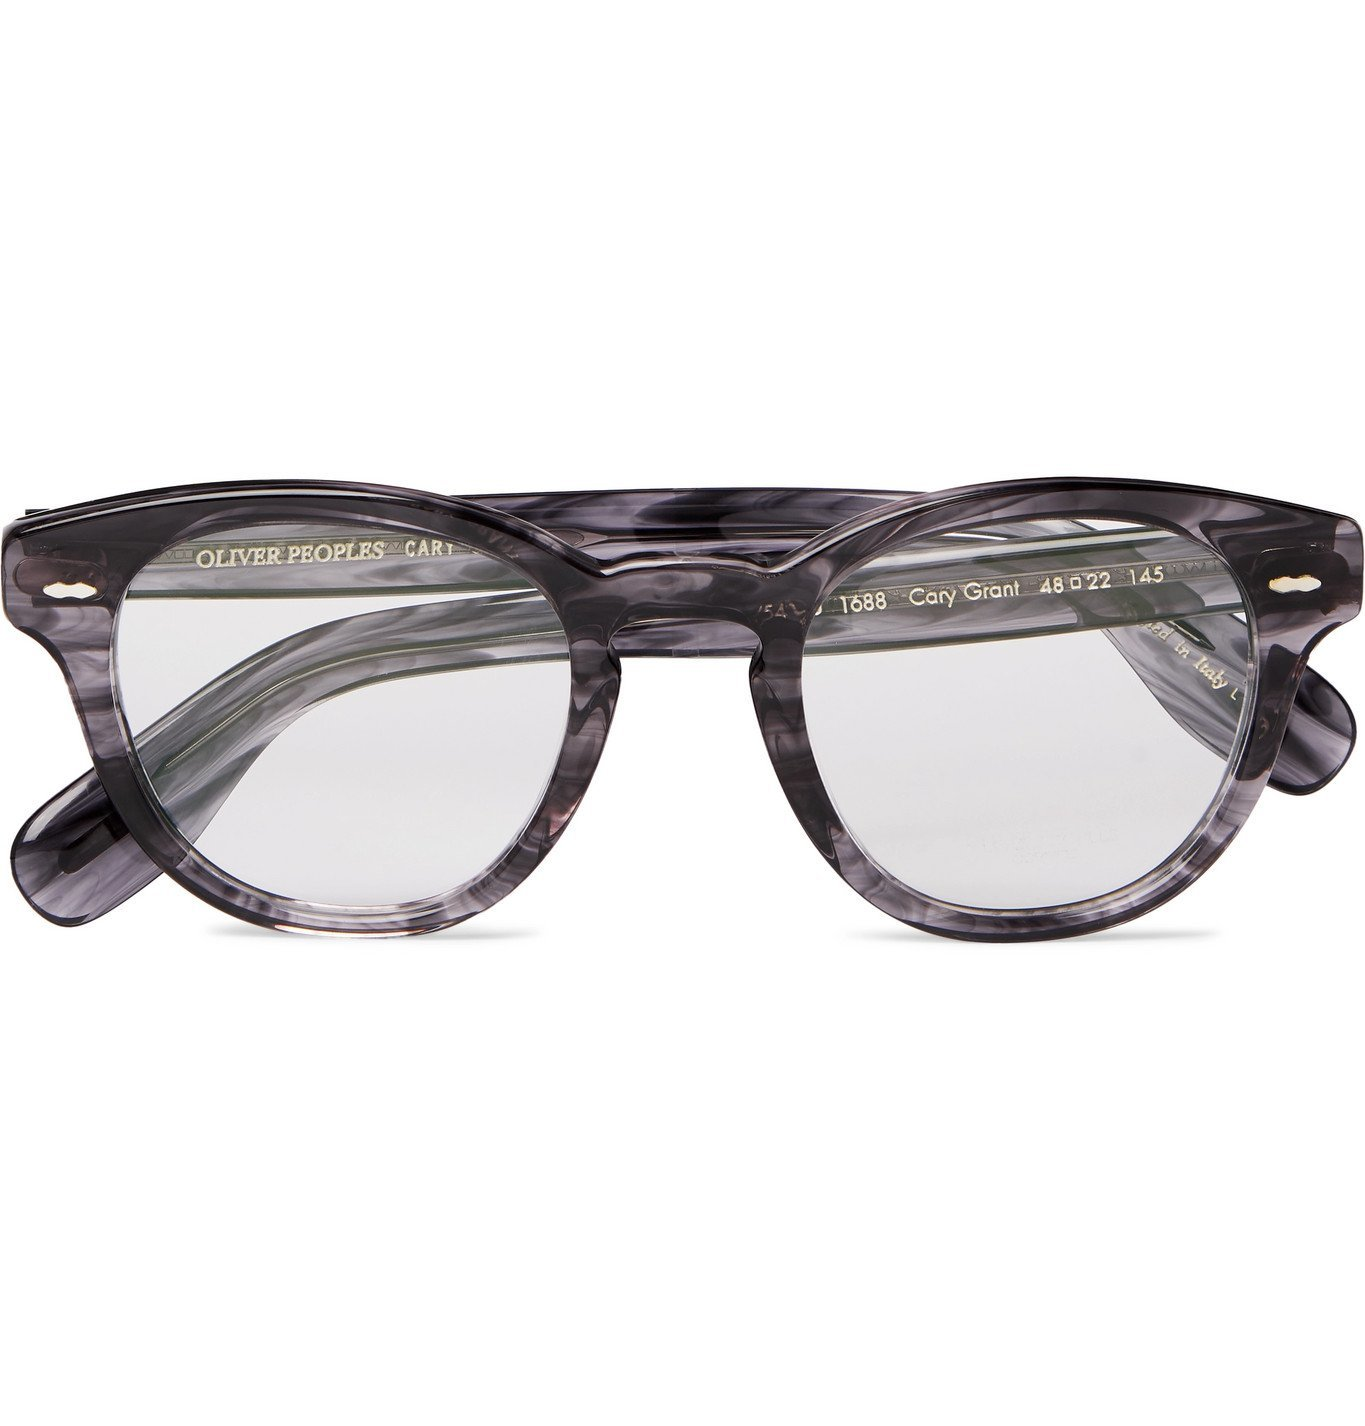 OLIVER PEOPLES - Cary Grant Round-Frame Acetate Optical Glasses - Blue